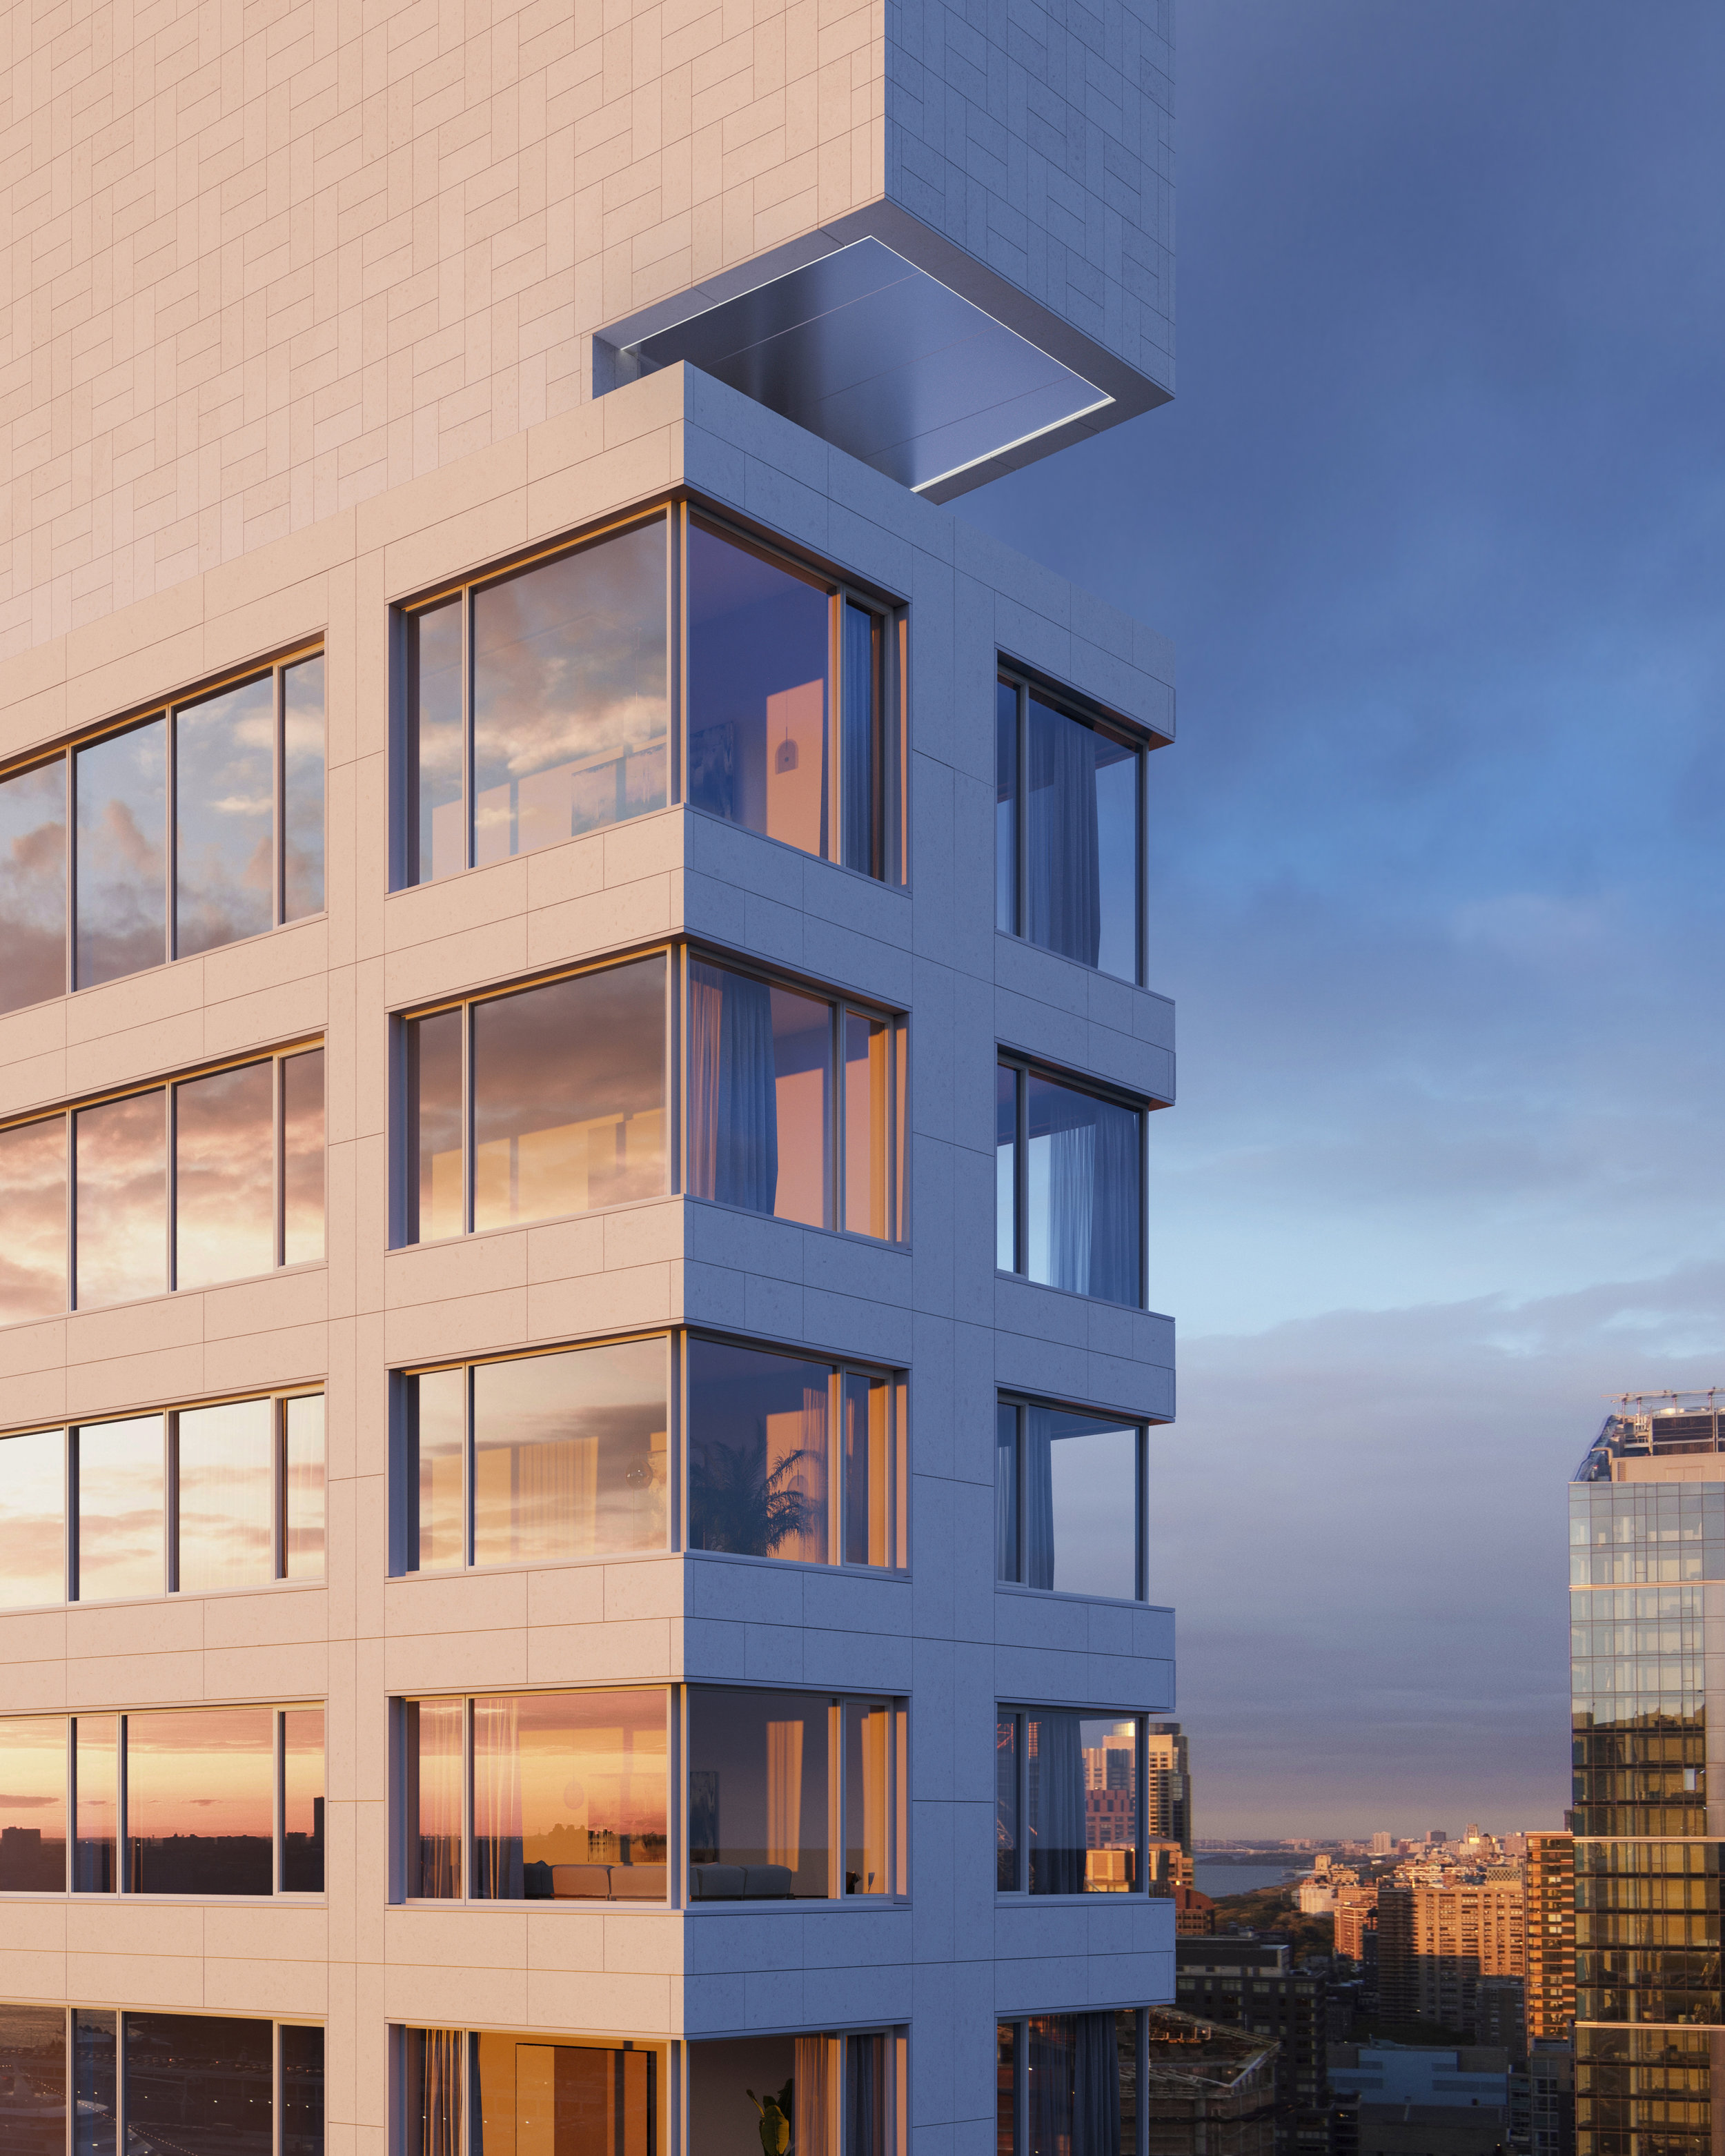 Alvaro Siza's First US Building, 611 West 56th Street, Reveals New Renderings